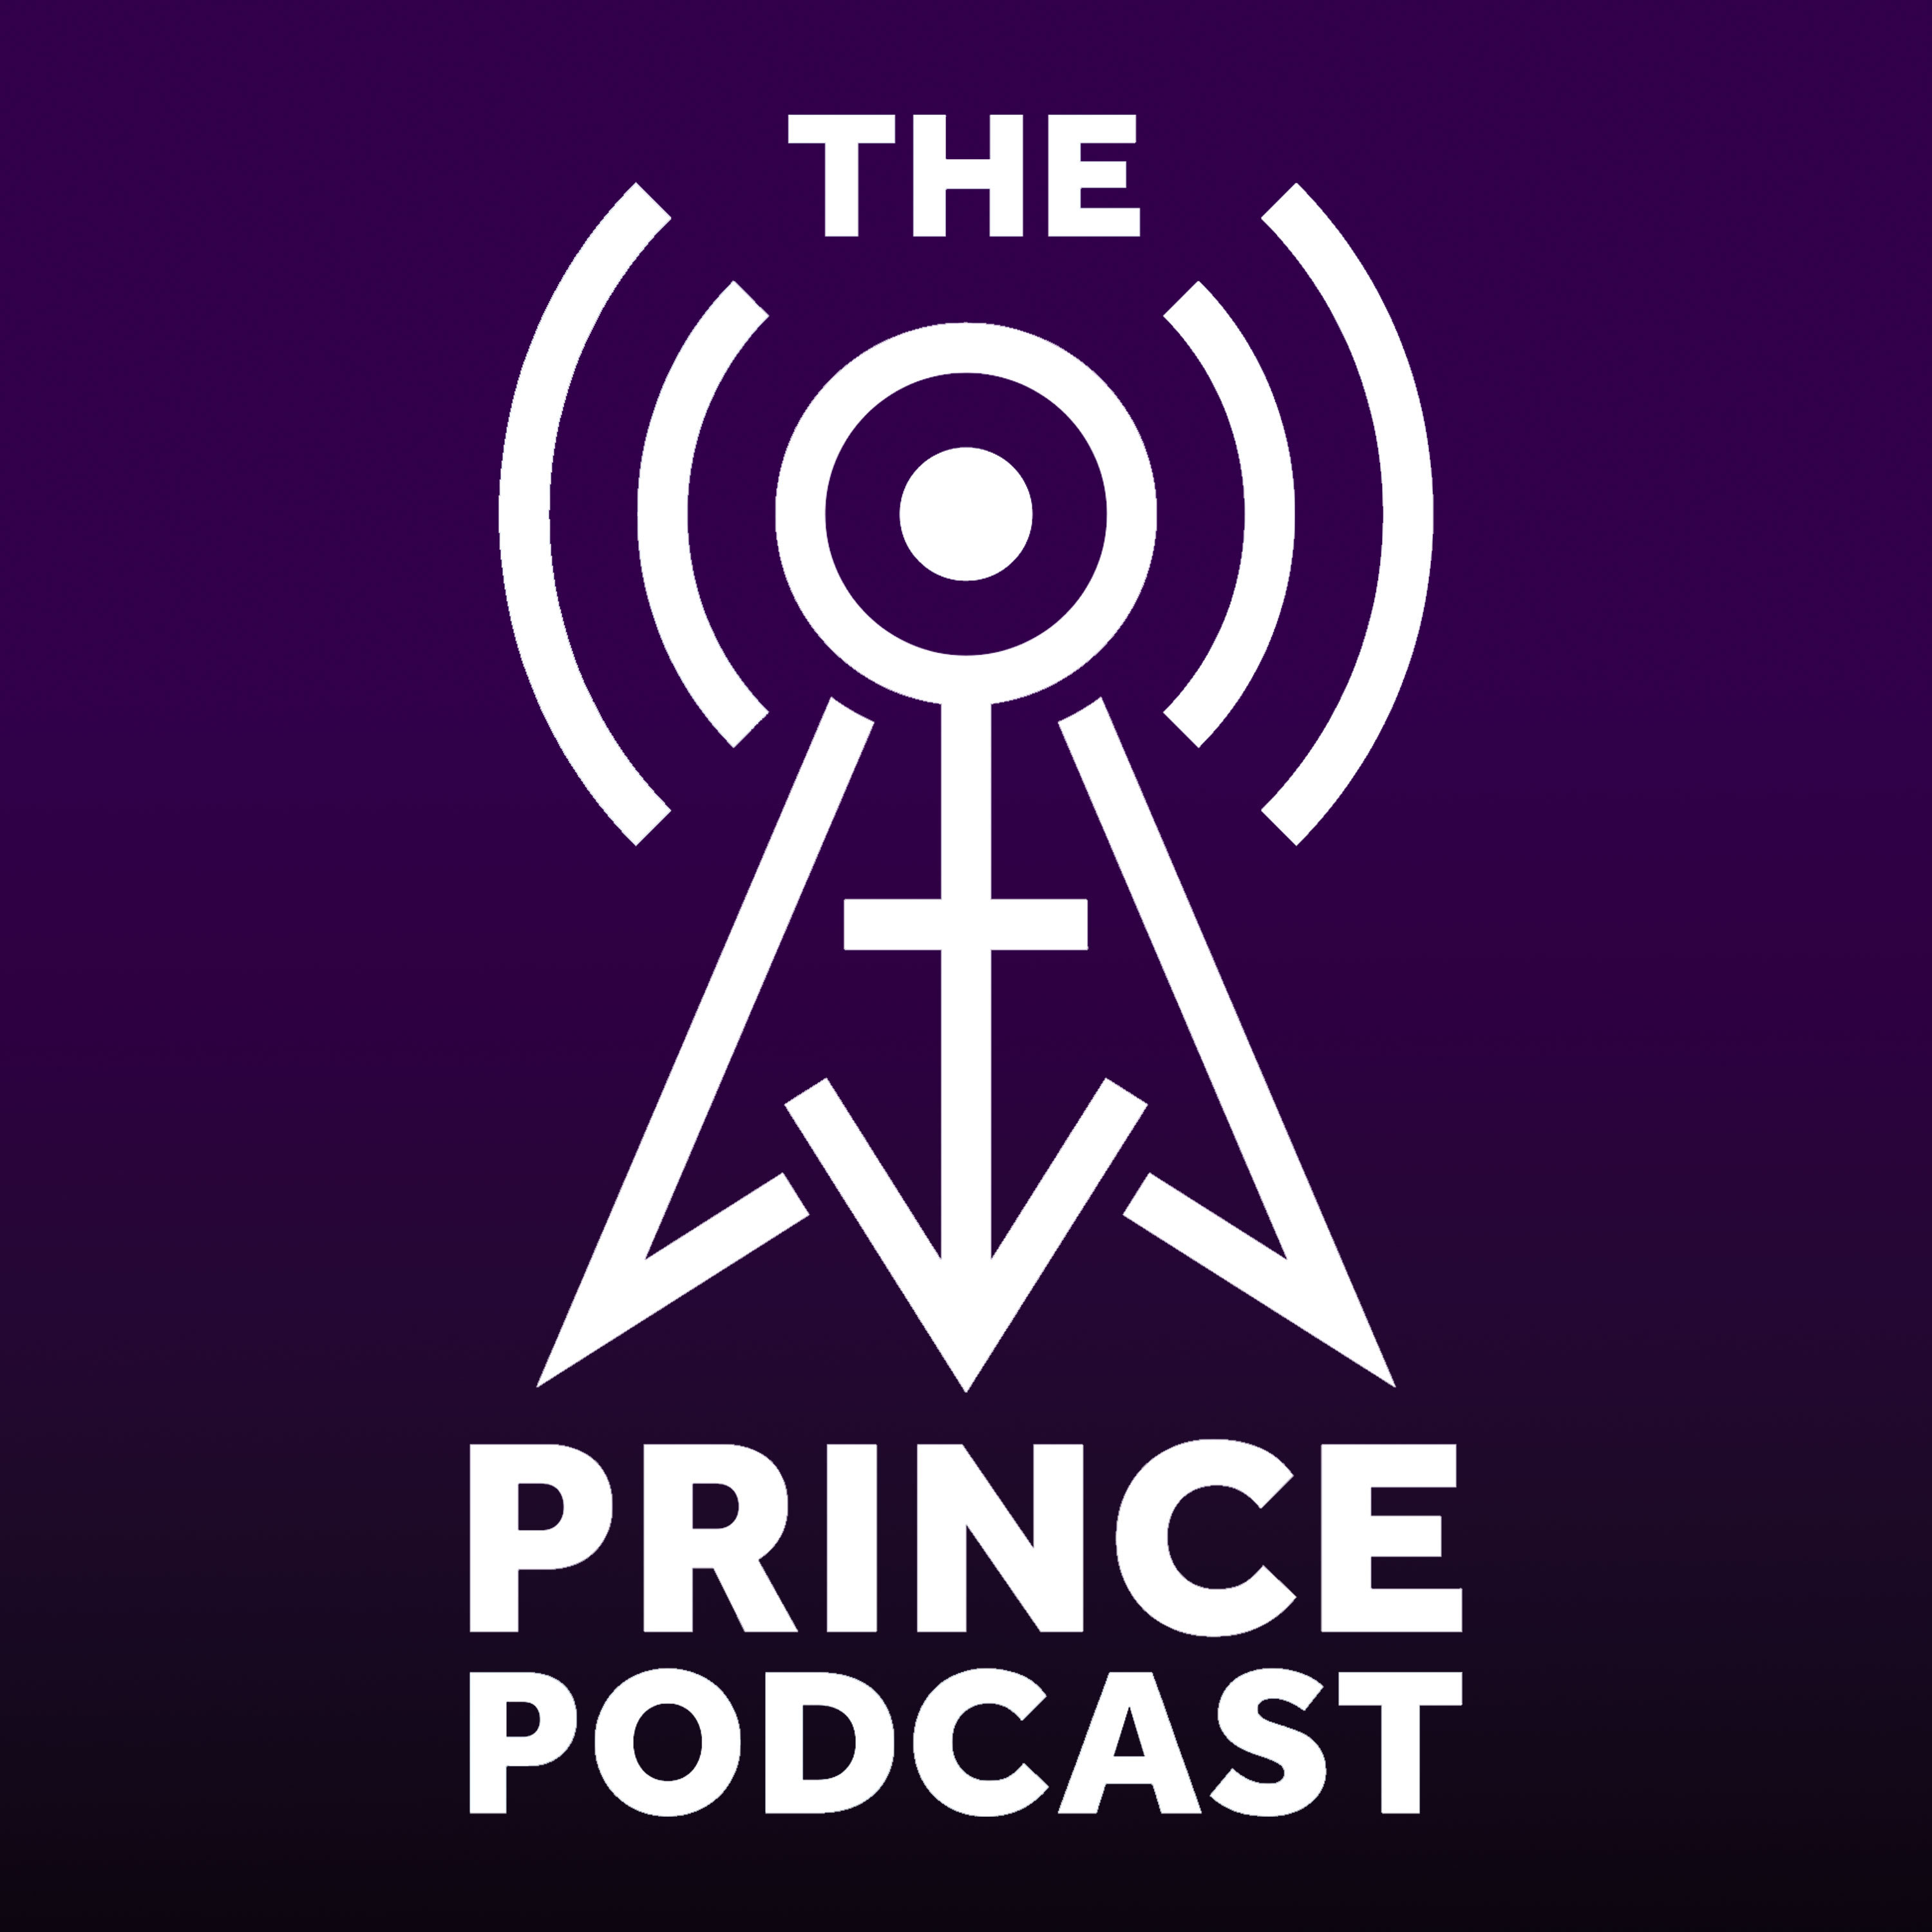 The Prince Podcast